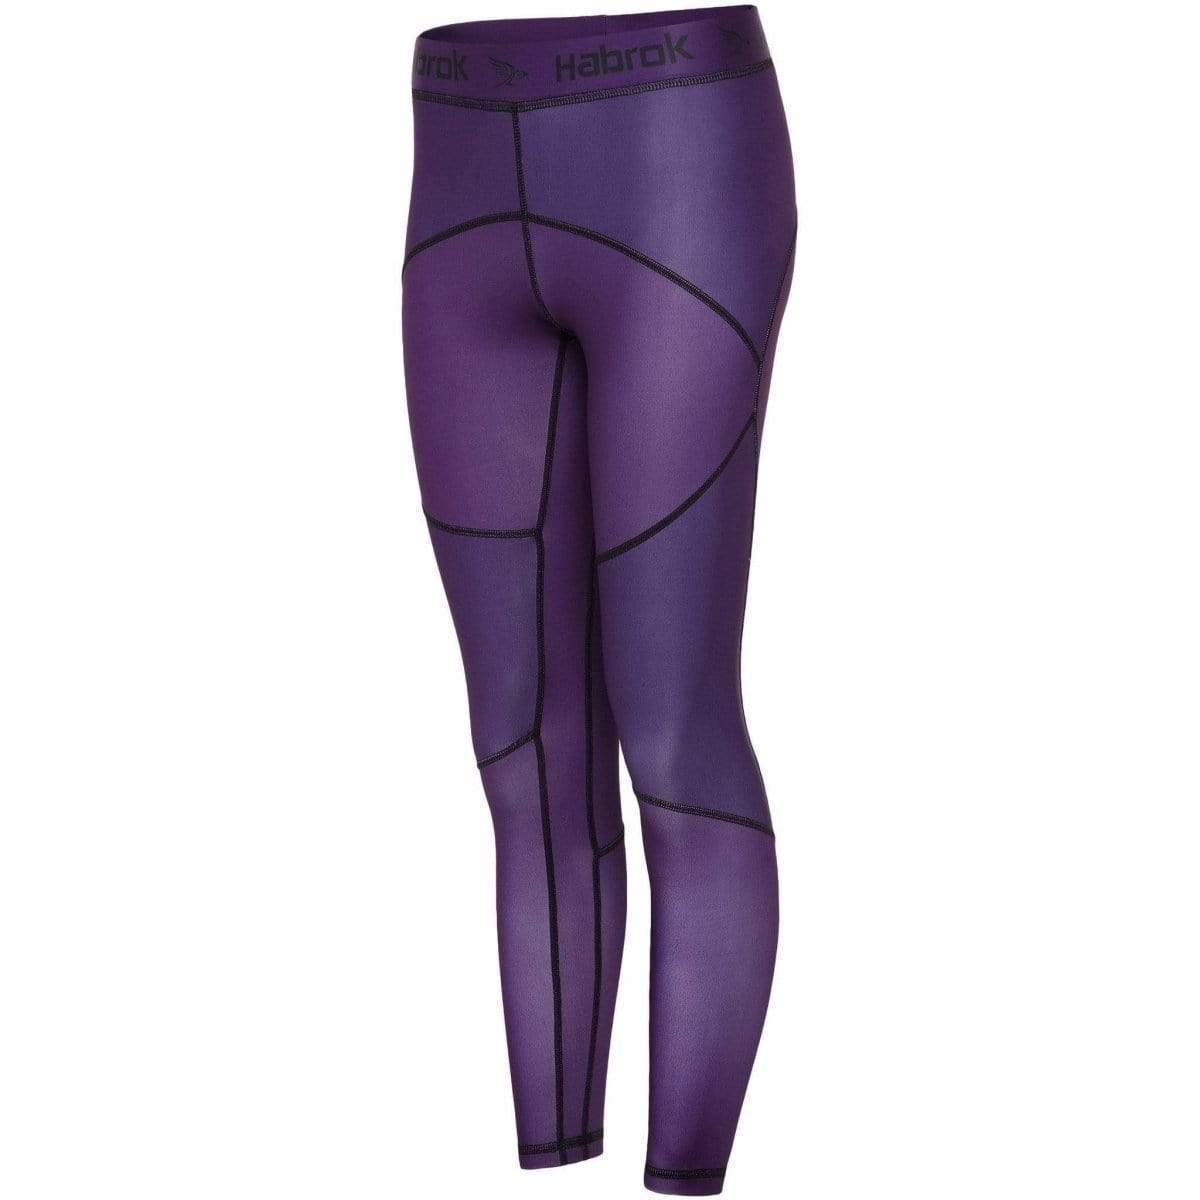 Habrok Spats XS / PURPLE Pugnator | Compression Pants | Women